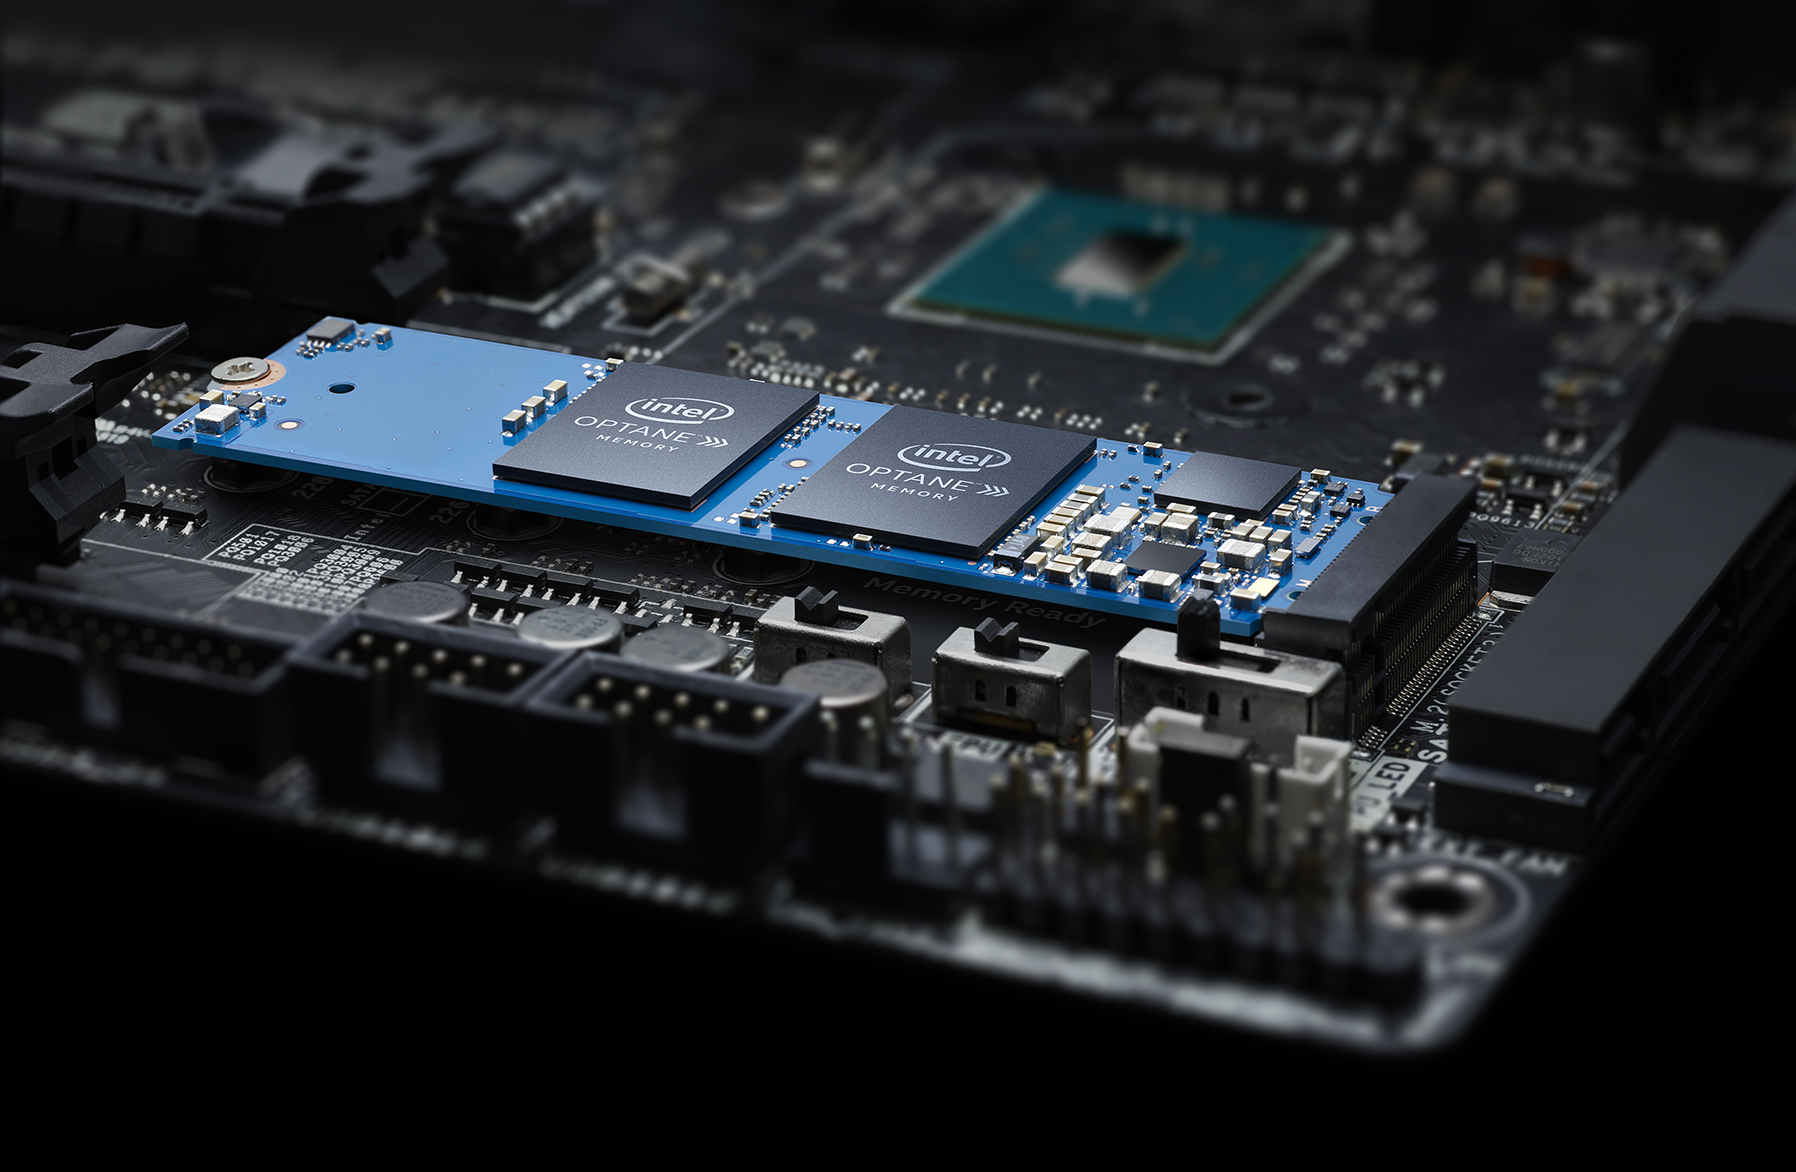 Intel is readying 144-Layer QLC SSDs alongside 2nd-gen PCIe 4.0 Optane drives